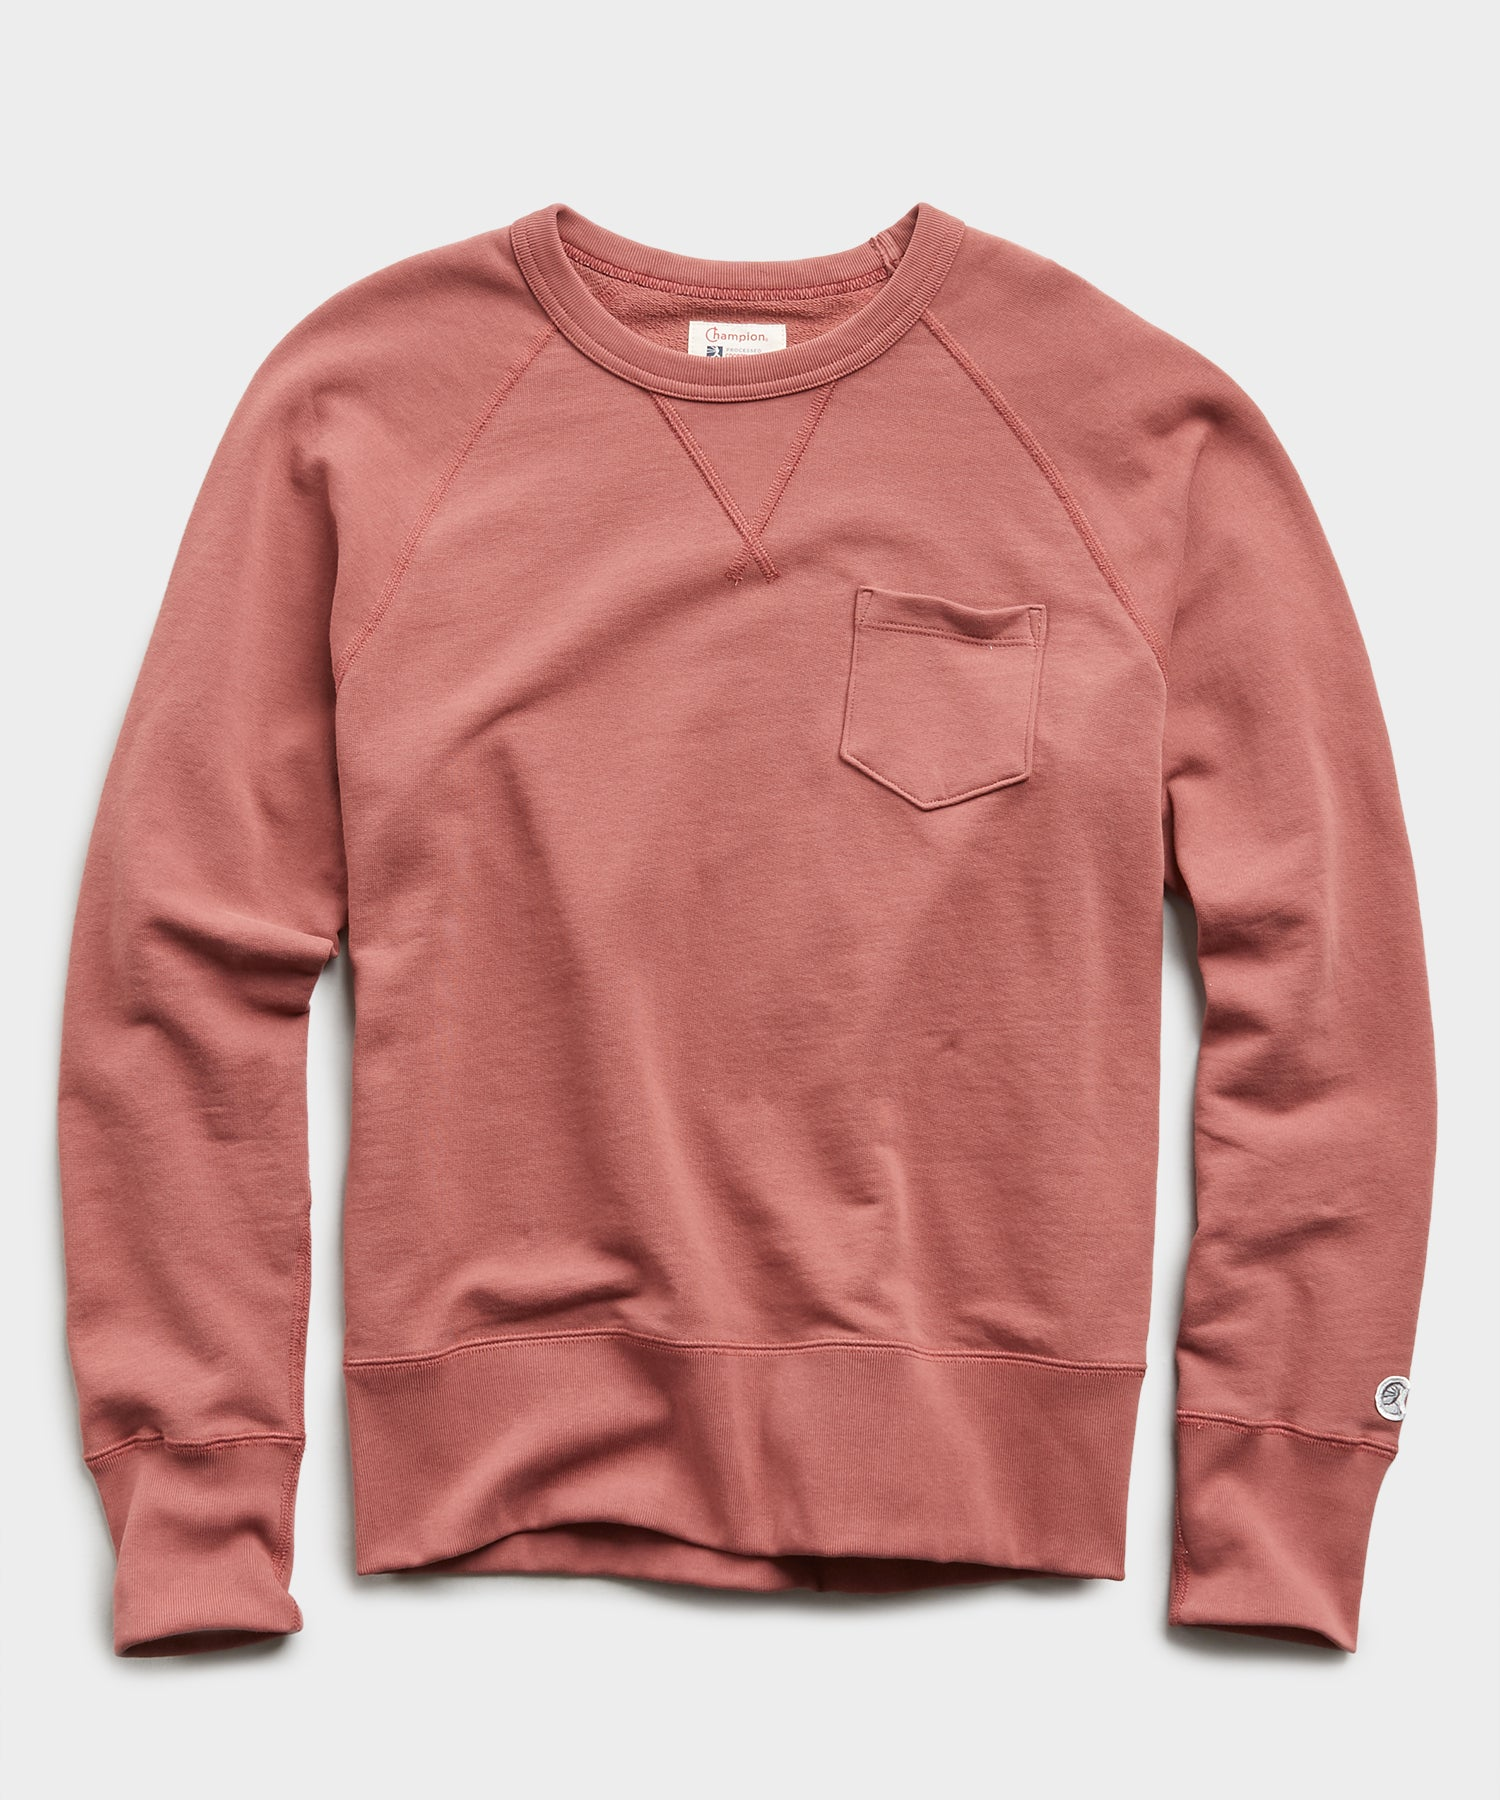 Lightweight Pocket Sweatshirt in Rosewine